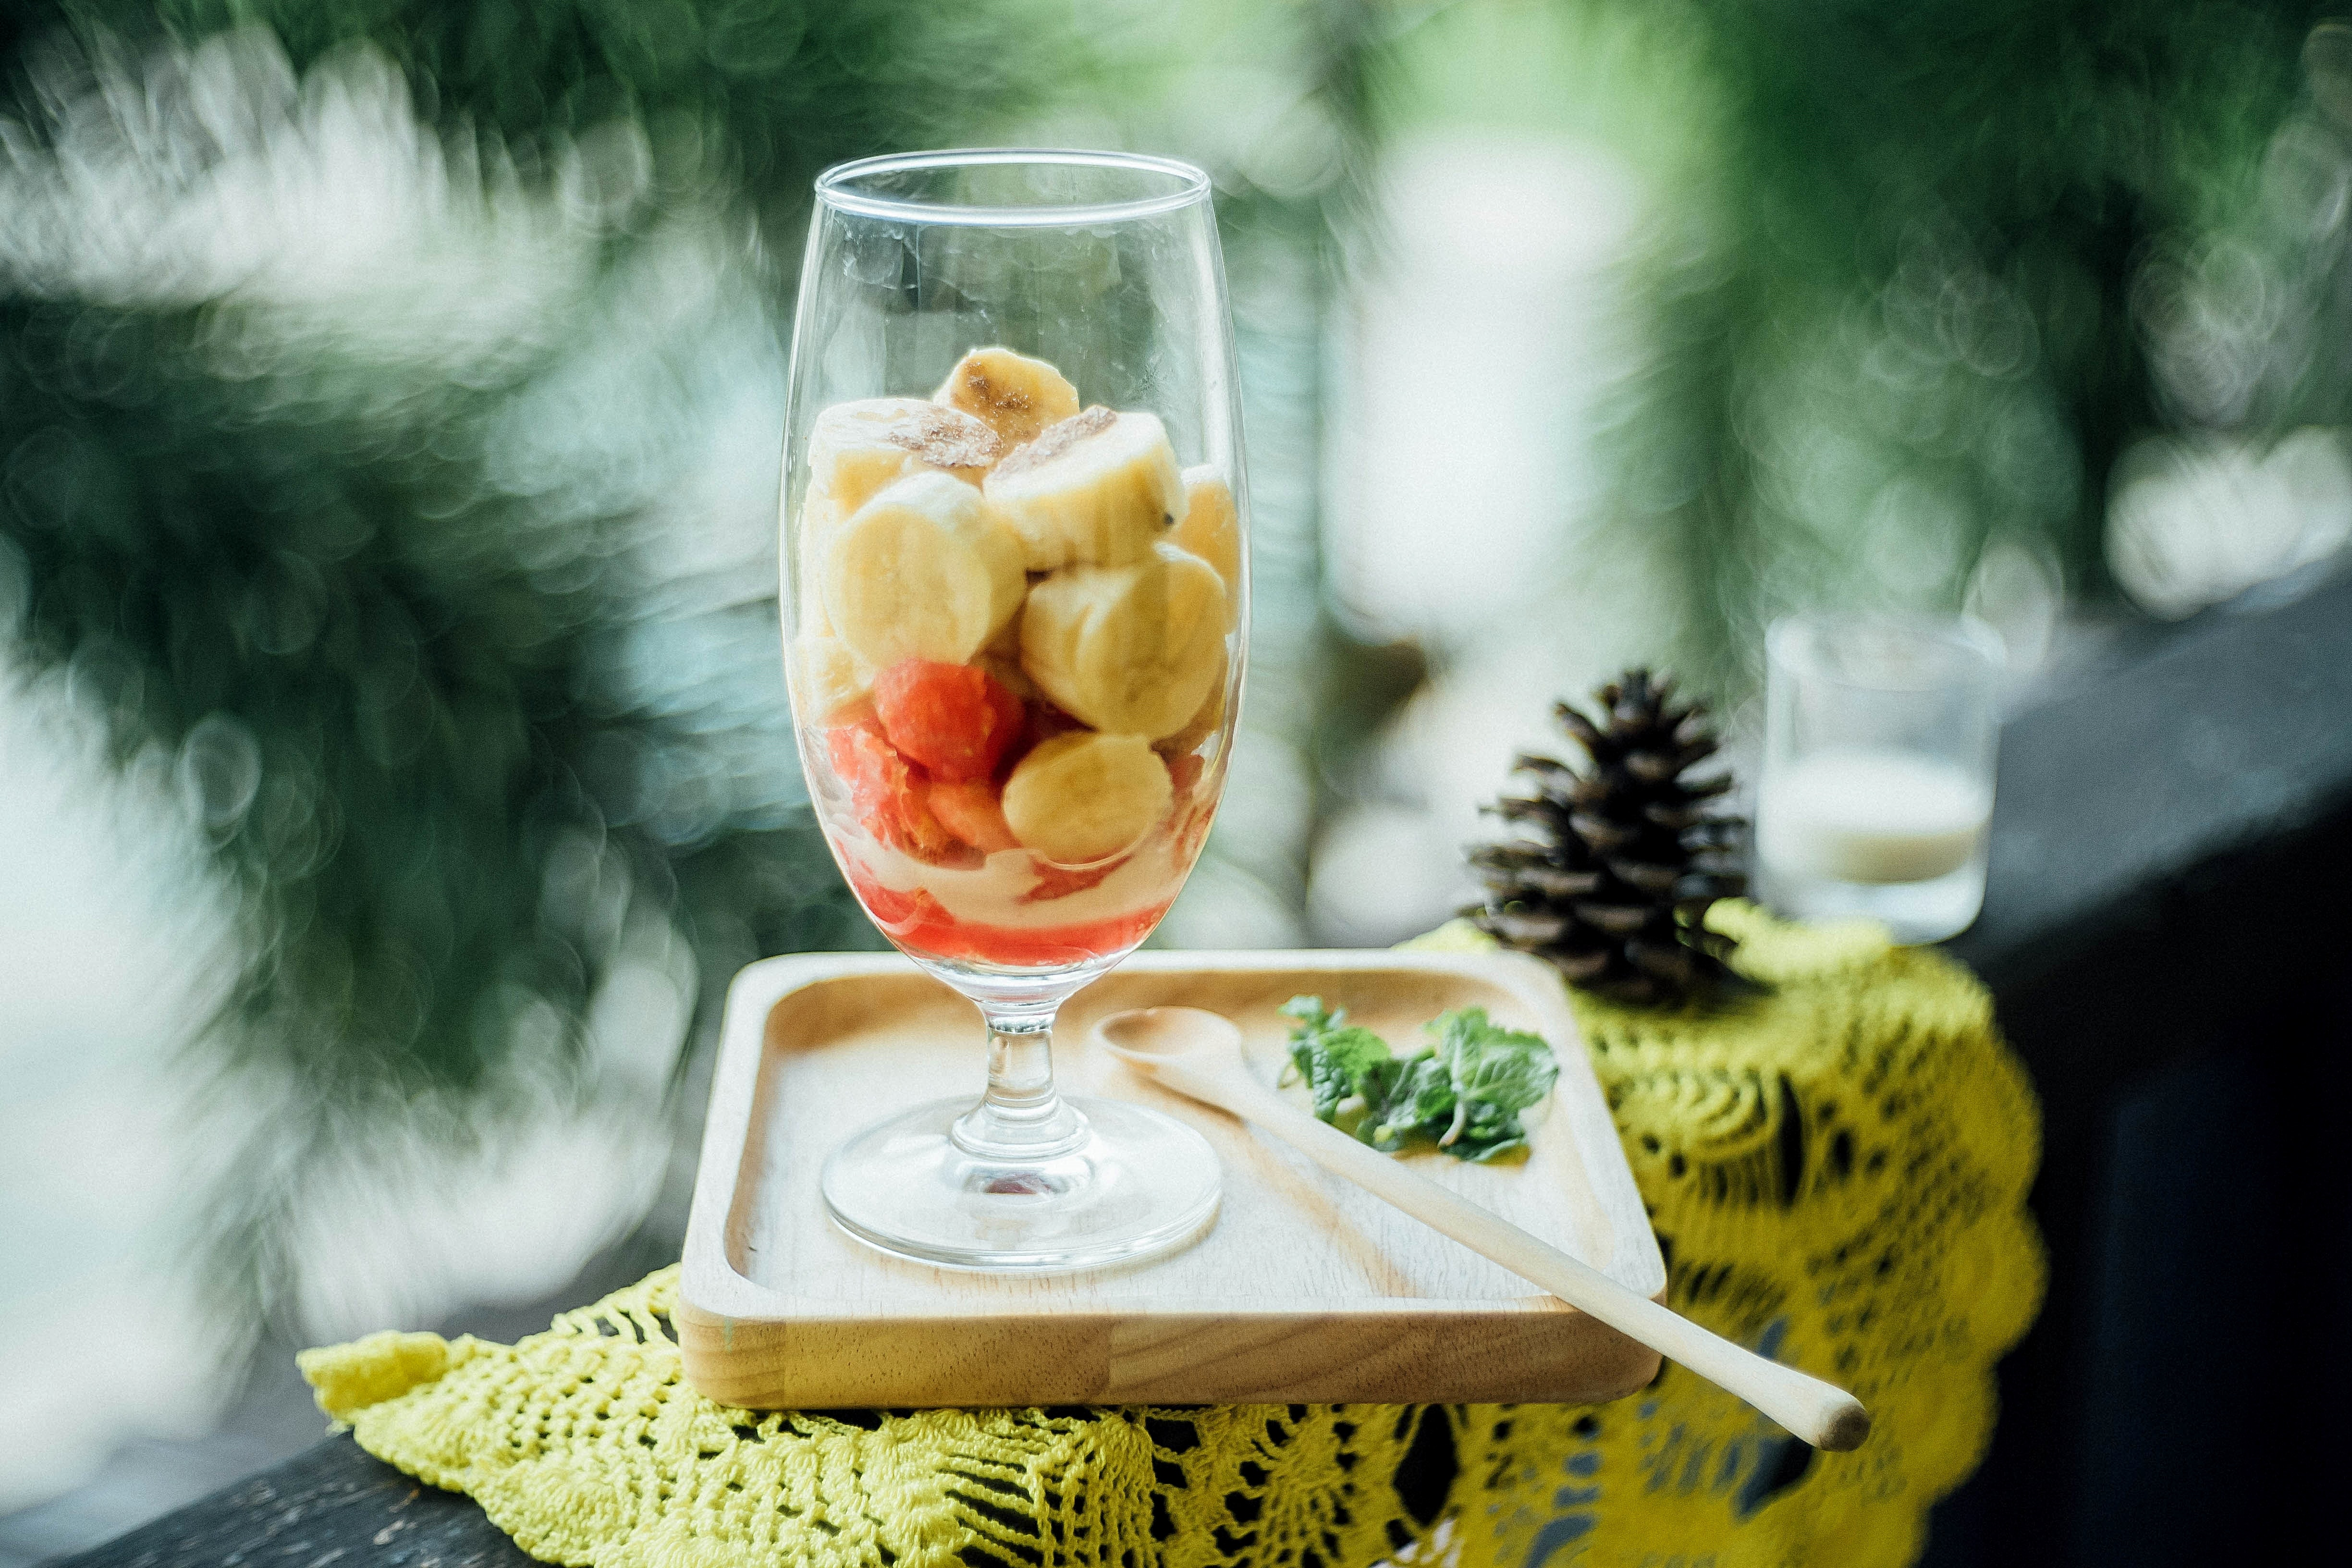 A glass of chopped bananas and strawberries beside a long wooden spoon and mint on a wood coaster on top of a yellow doily next to a pinecone and a glass of milk